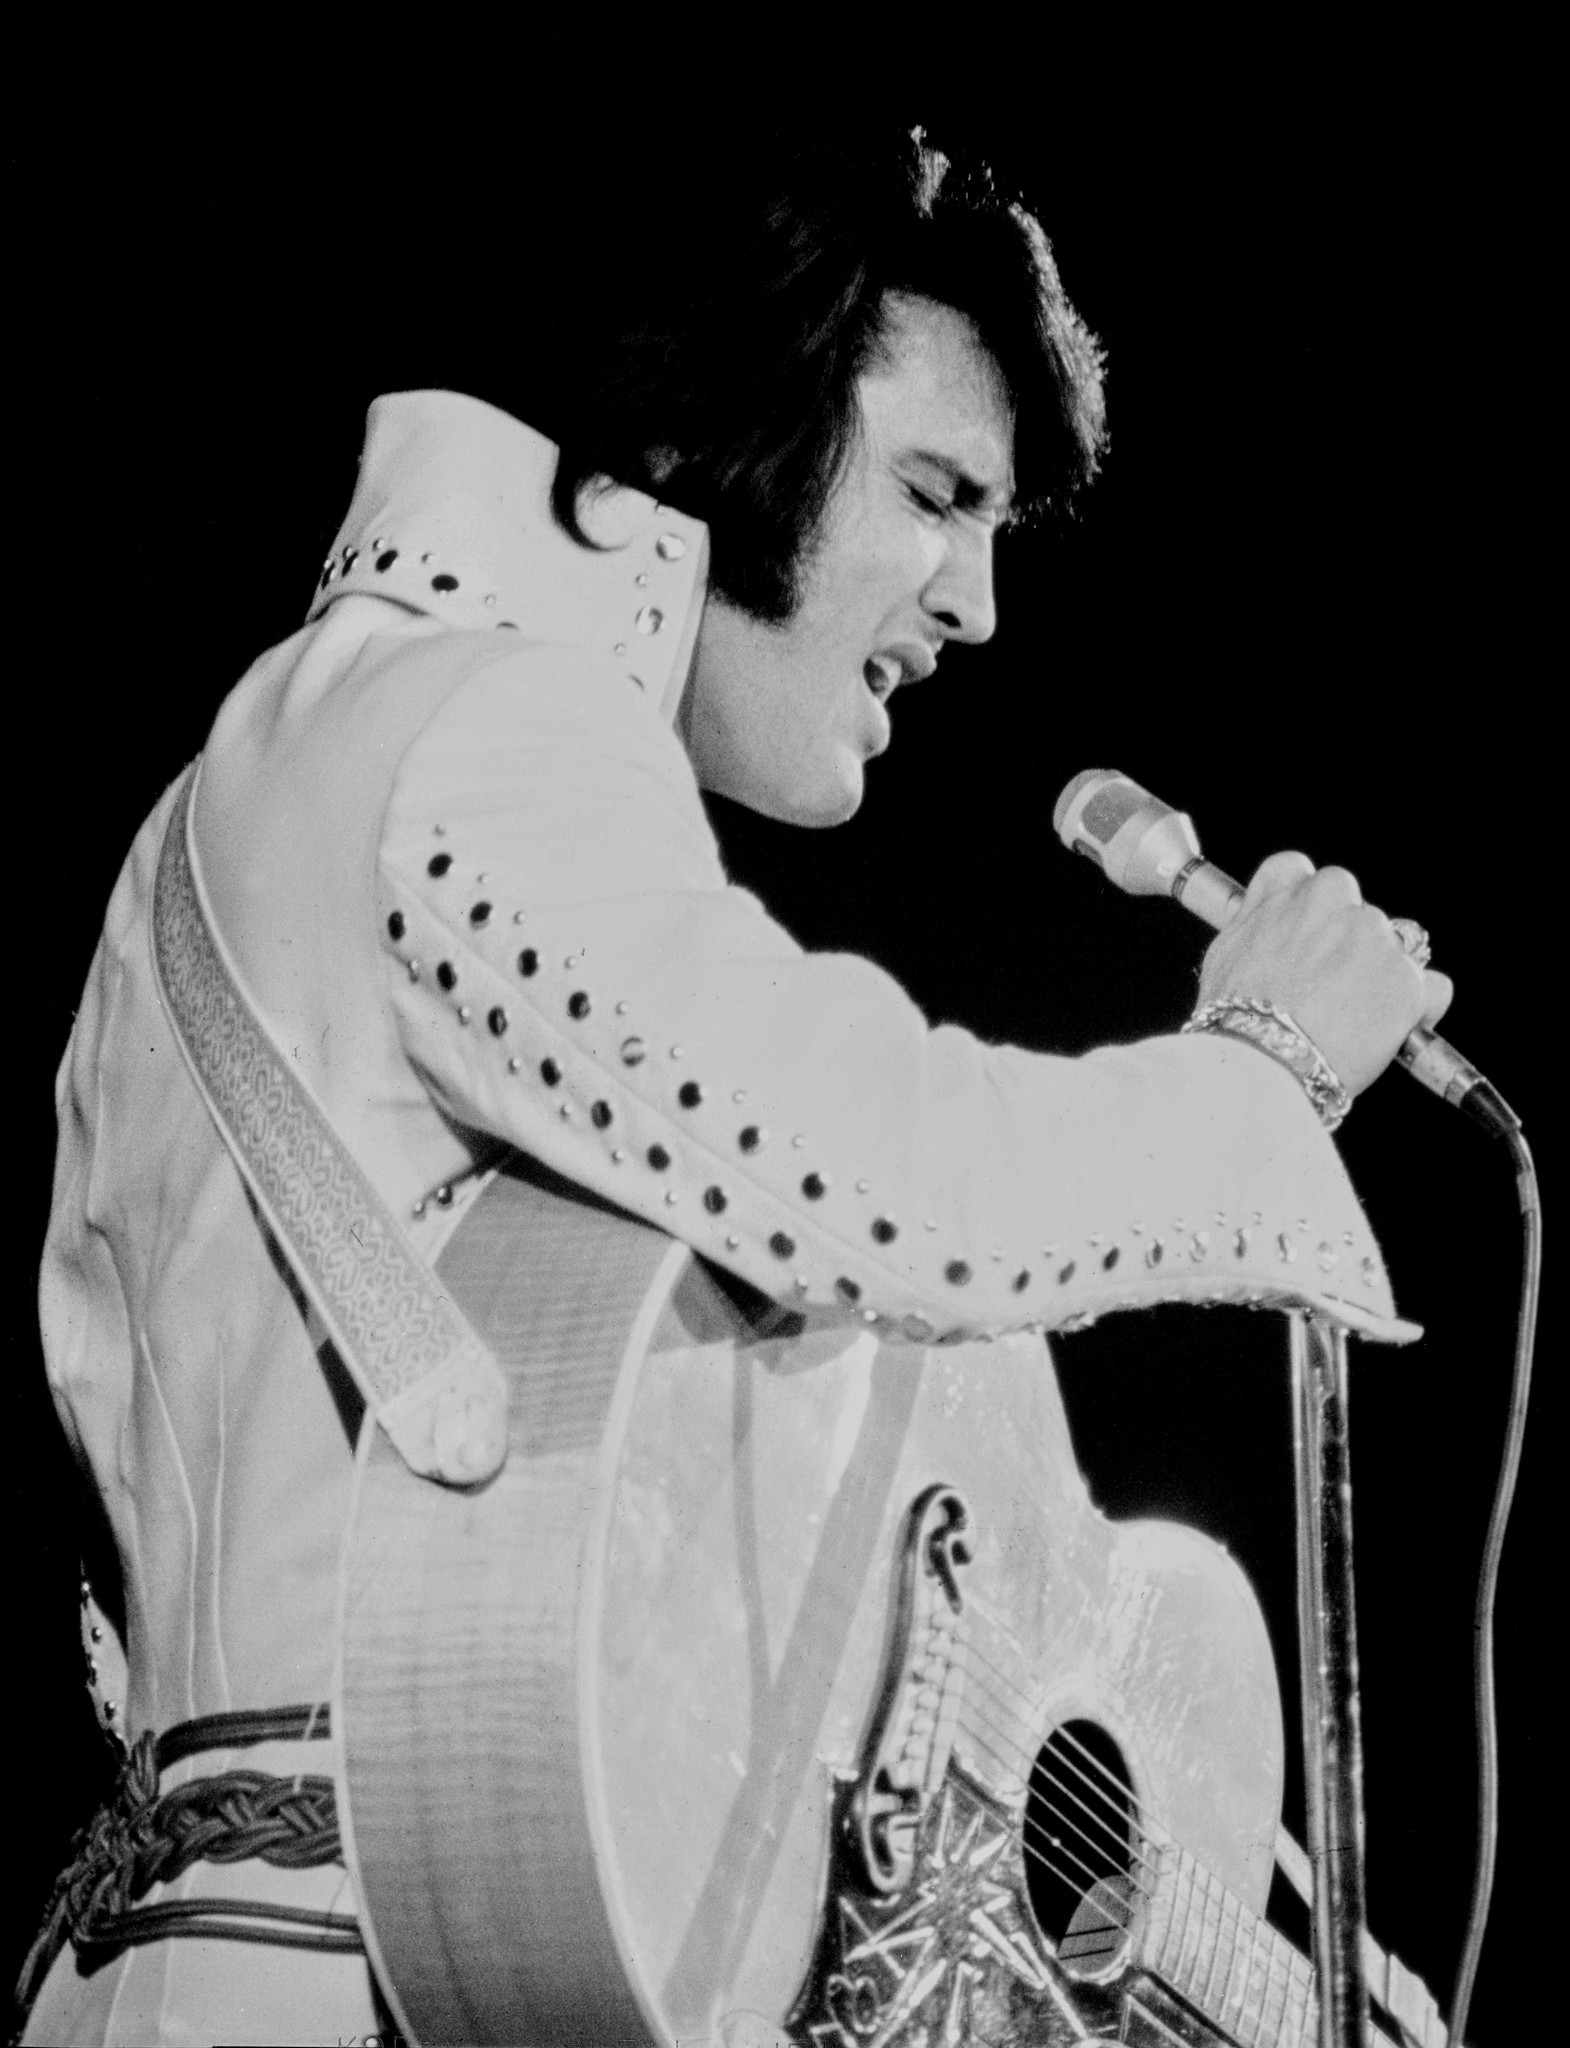 During the 1970s. Elvis was famous for his jewel-encrusted jumpsuits. He's seen here performing at the International on Aug. 17, 1971.